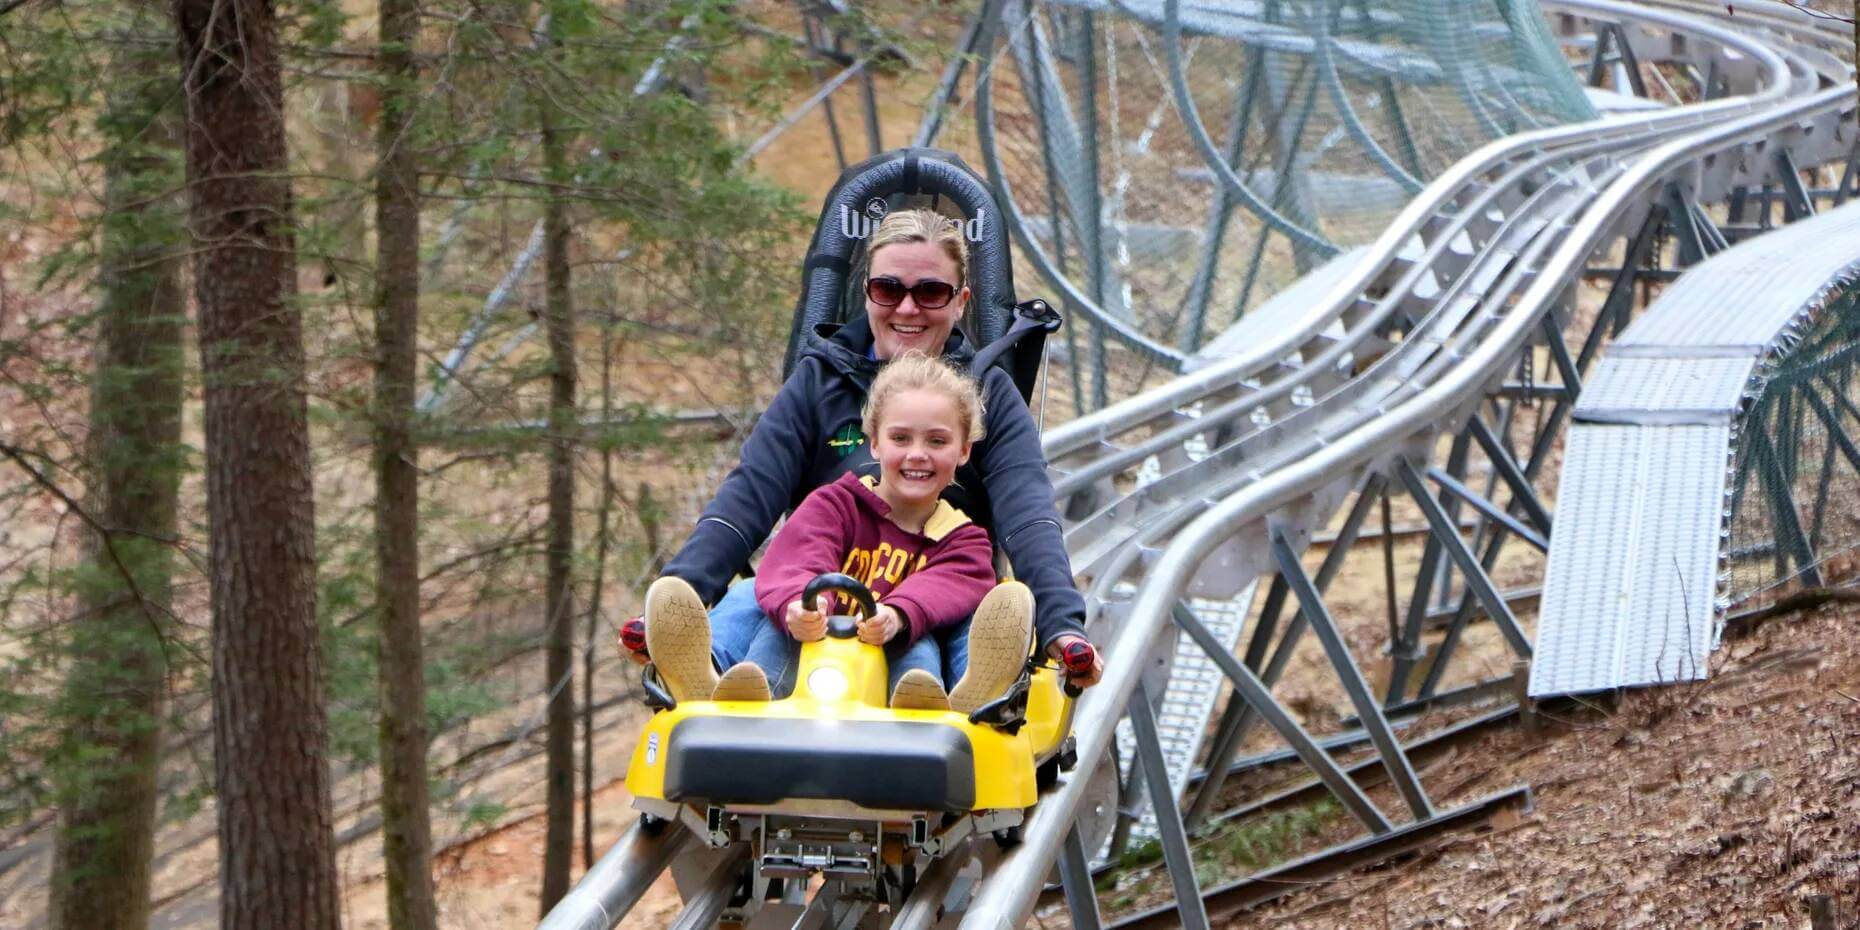 georgia-mountain-coaster-02-tiny